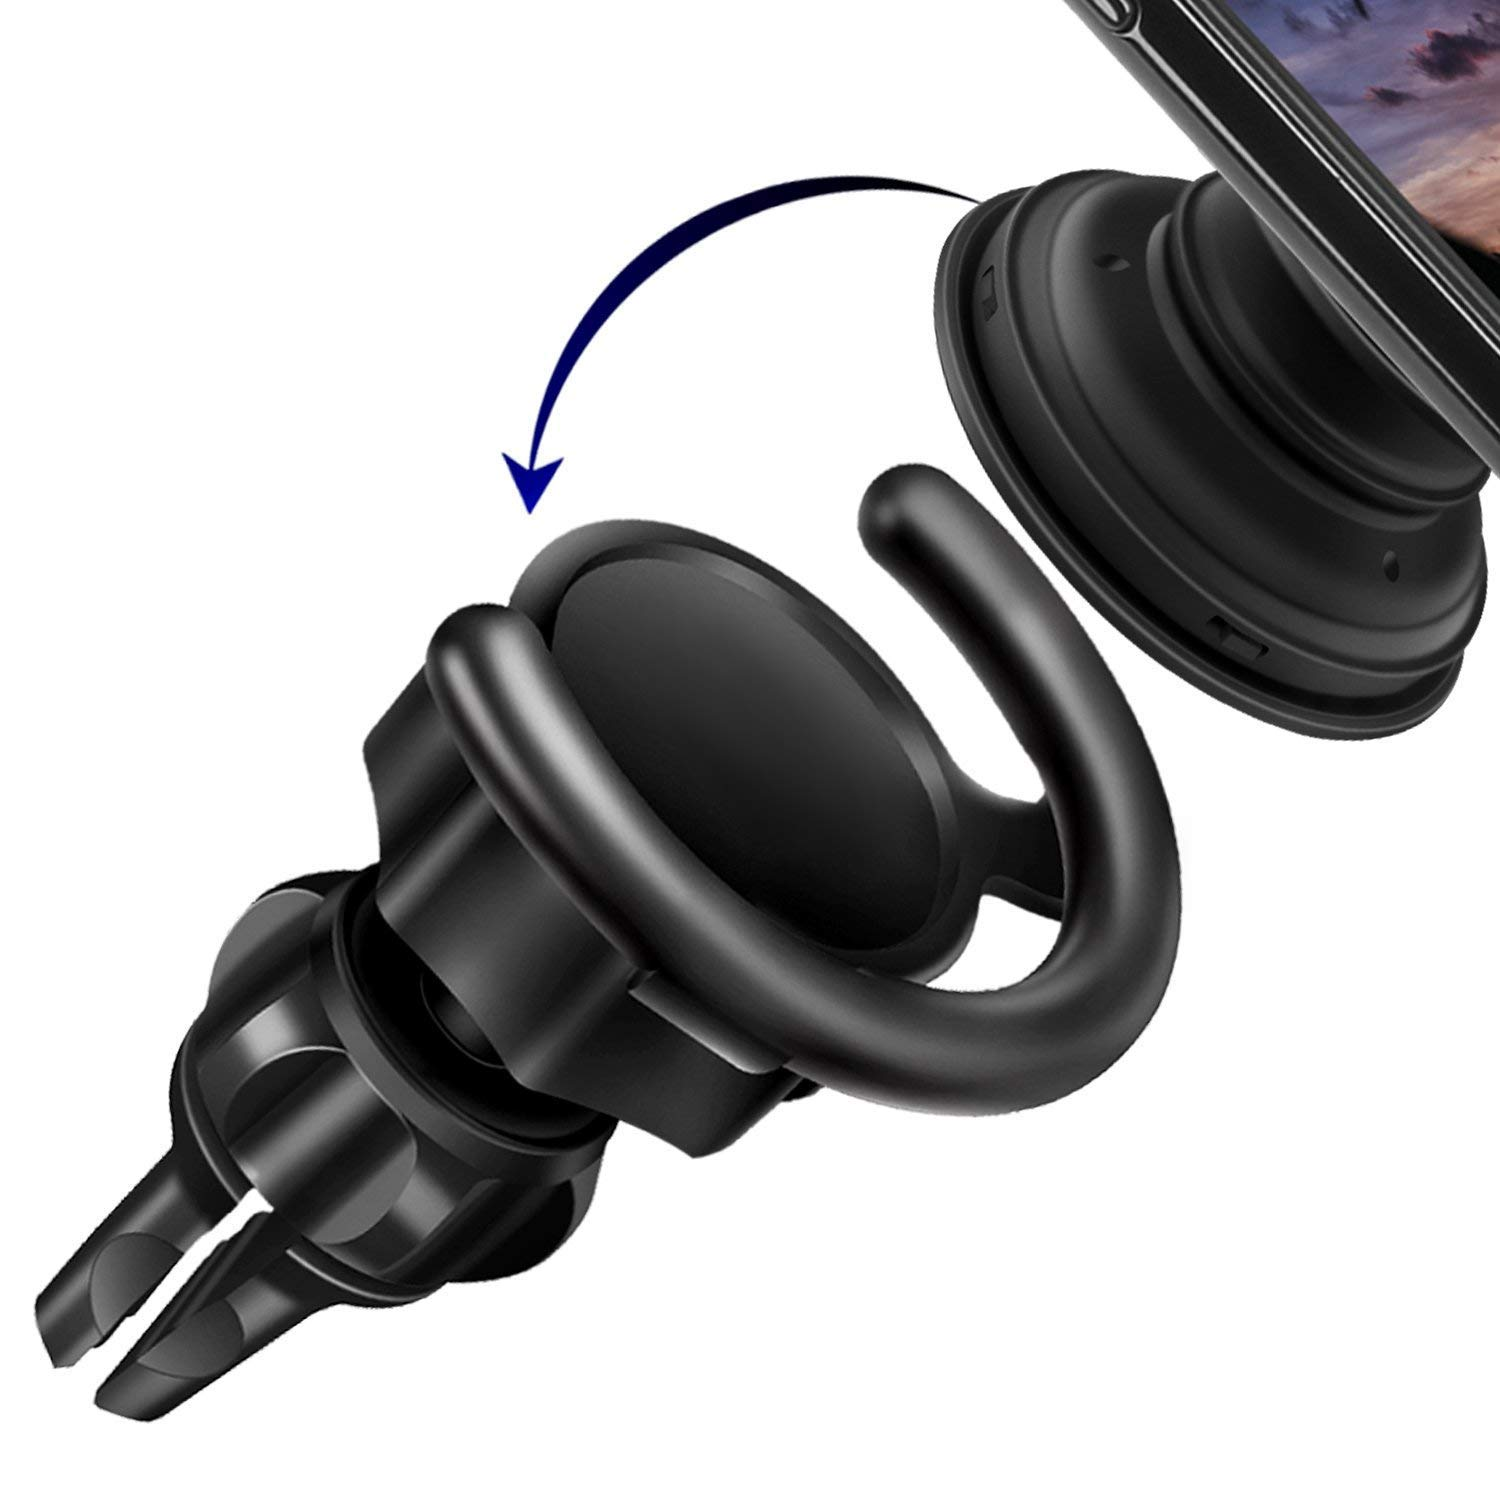 Car Mount Compatible with Stand Socket, 360° Rotation Car Dashboard Desk Wall and Air Vent Mount for sockets Expanding Grip Stand Users Easier Holder Phone Or Navigation and Calling(Upgrade) Airror